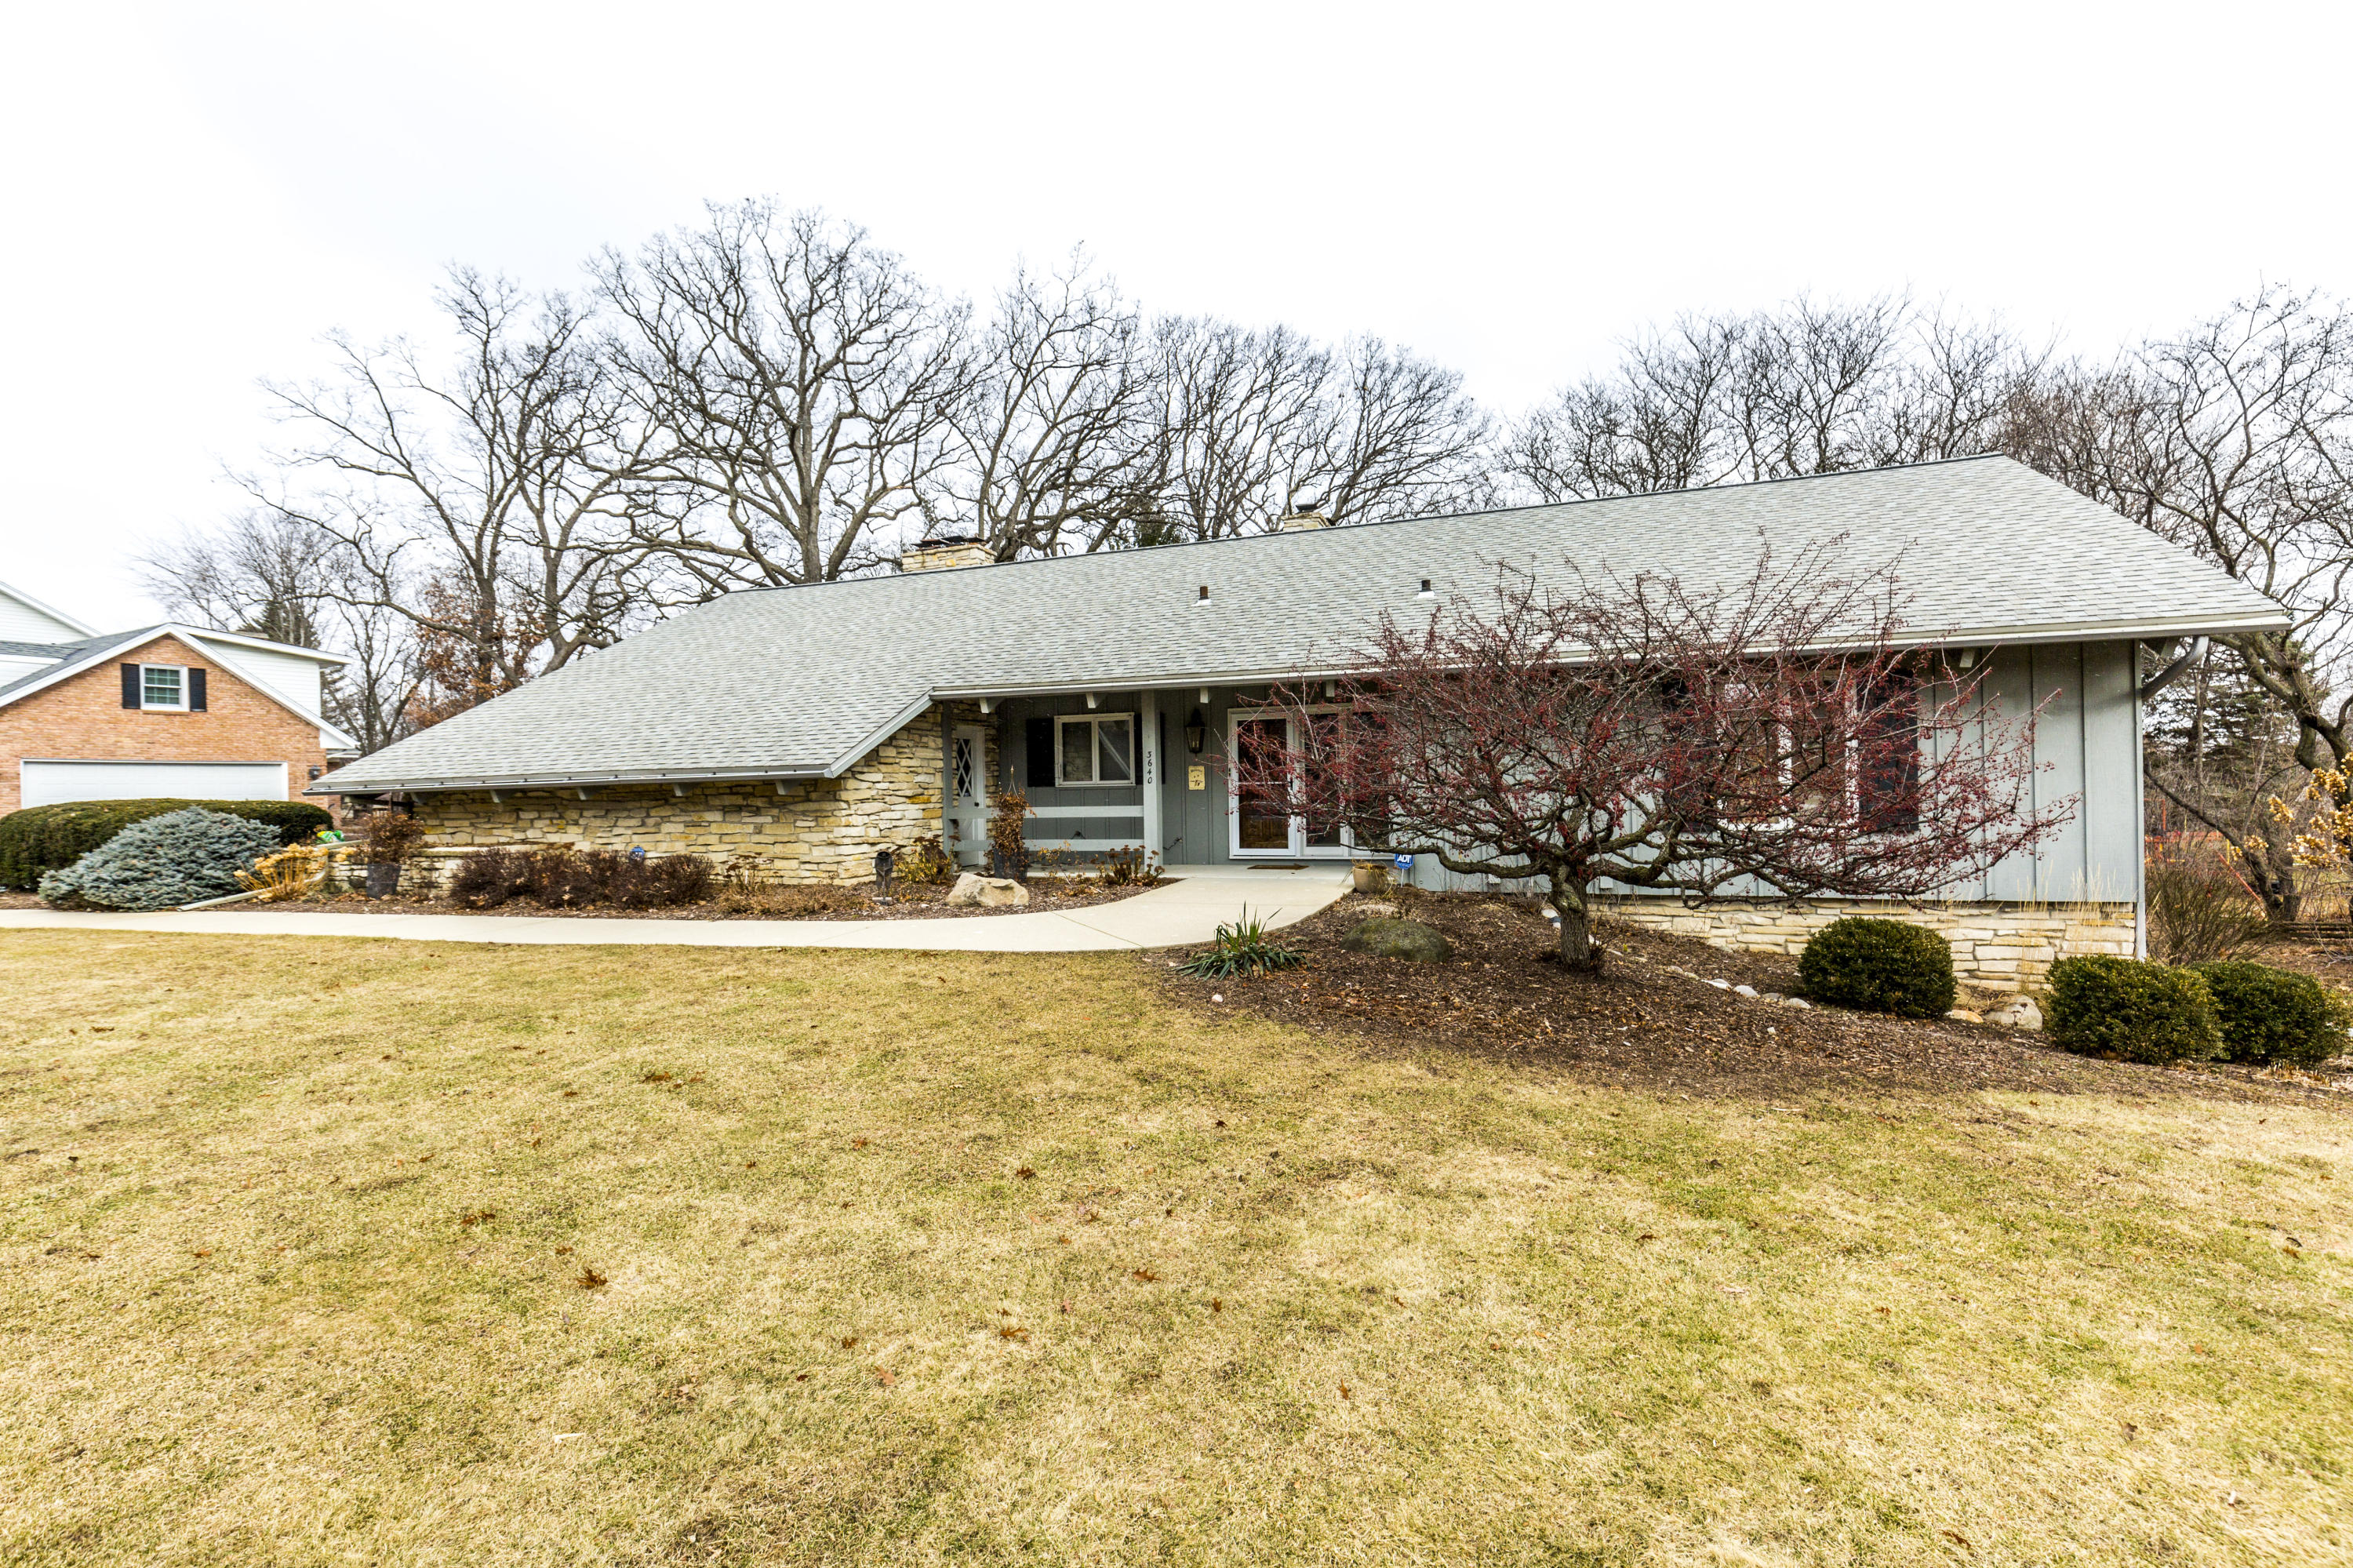 3640 Mary Cliff LN, Brookfield, Wisconsin 53005, 4 Bedrooms Bedrooms, 11 Rooms Rooms,3 BathroomsBathrooms,Single-Family,For Sale,Mary Cliff LN,1620398